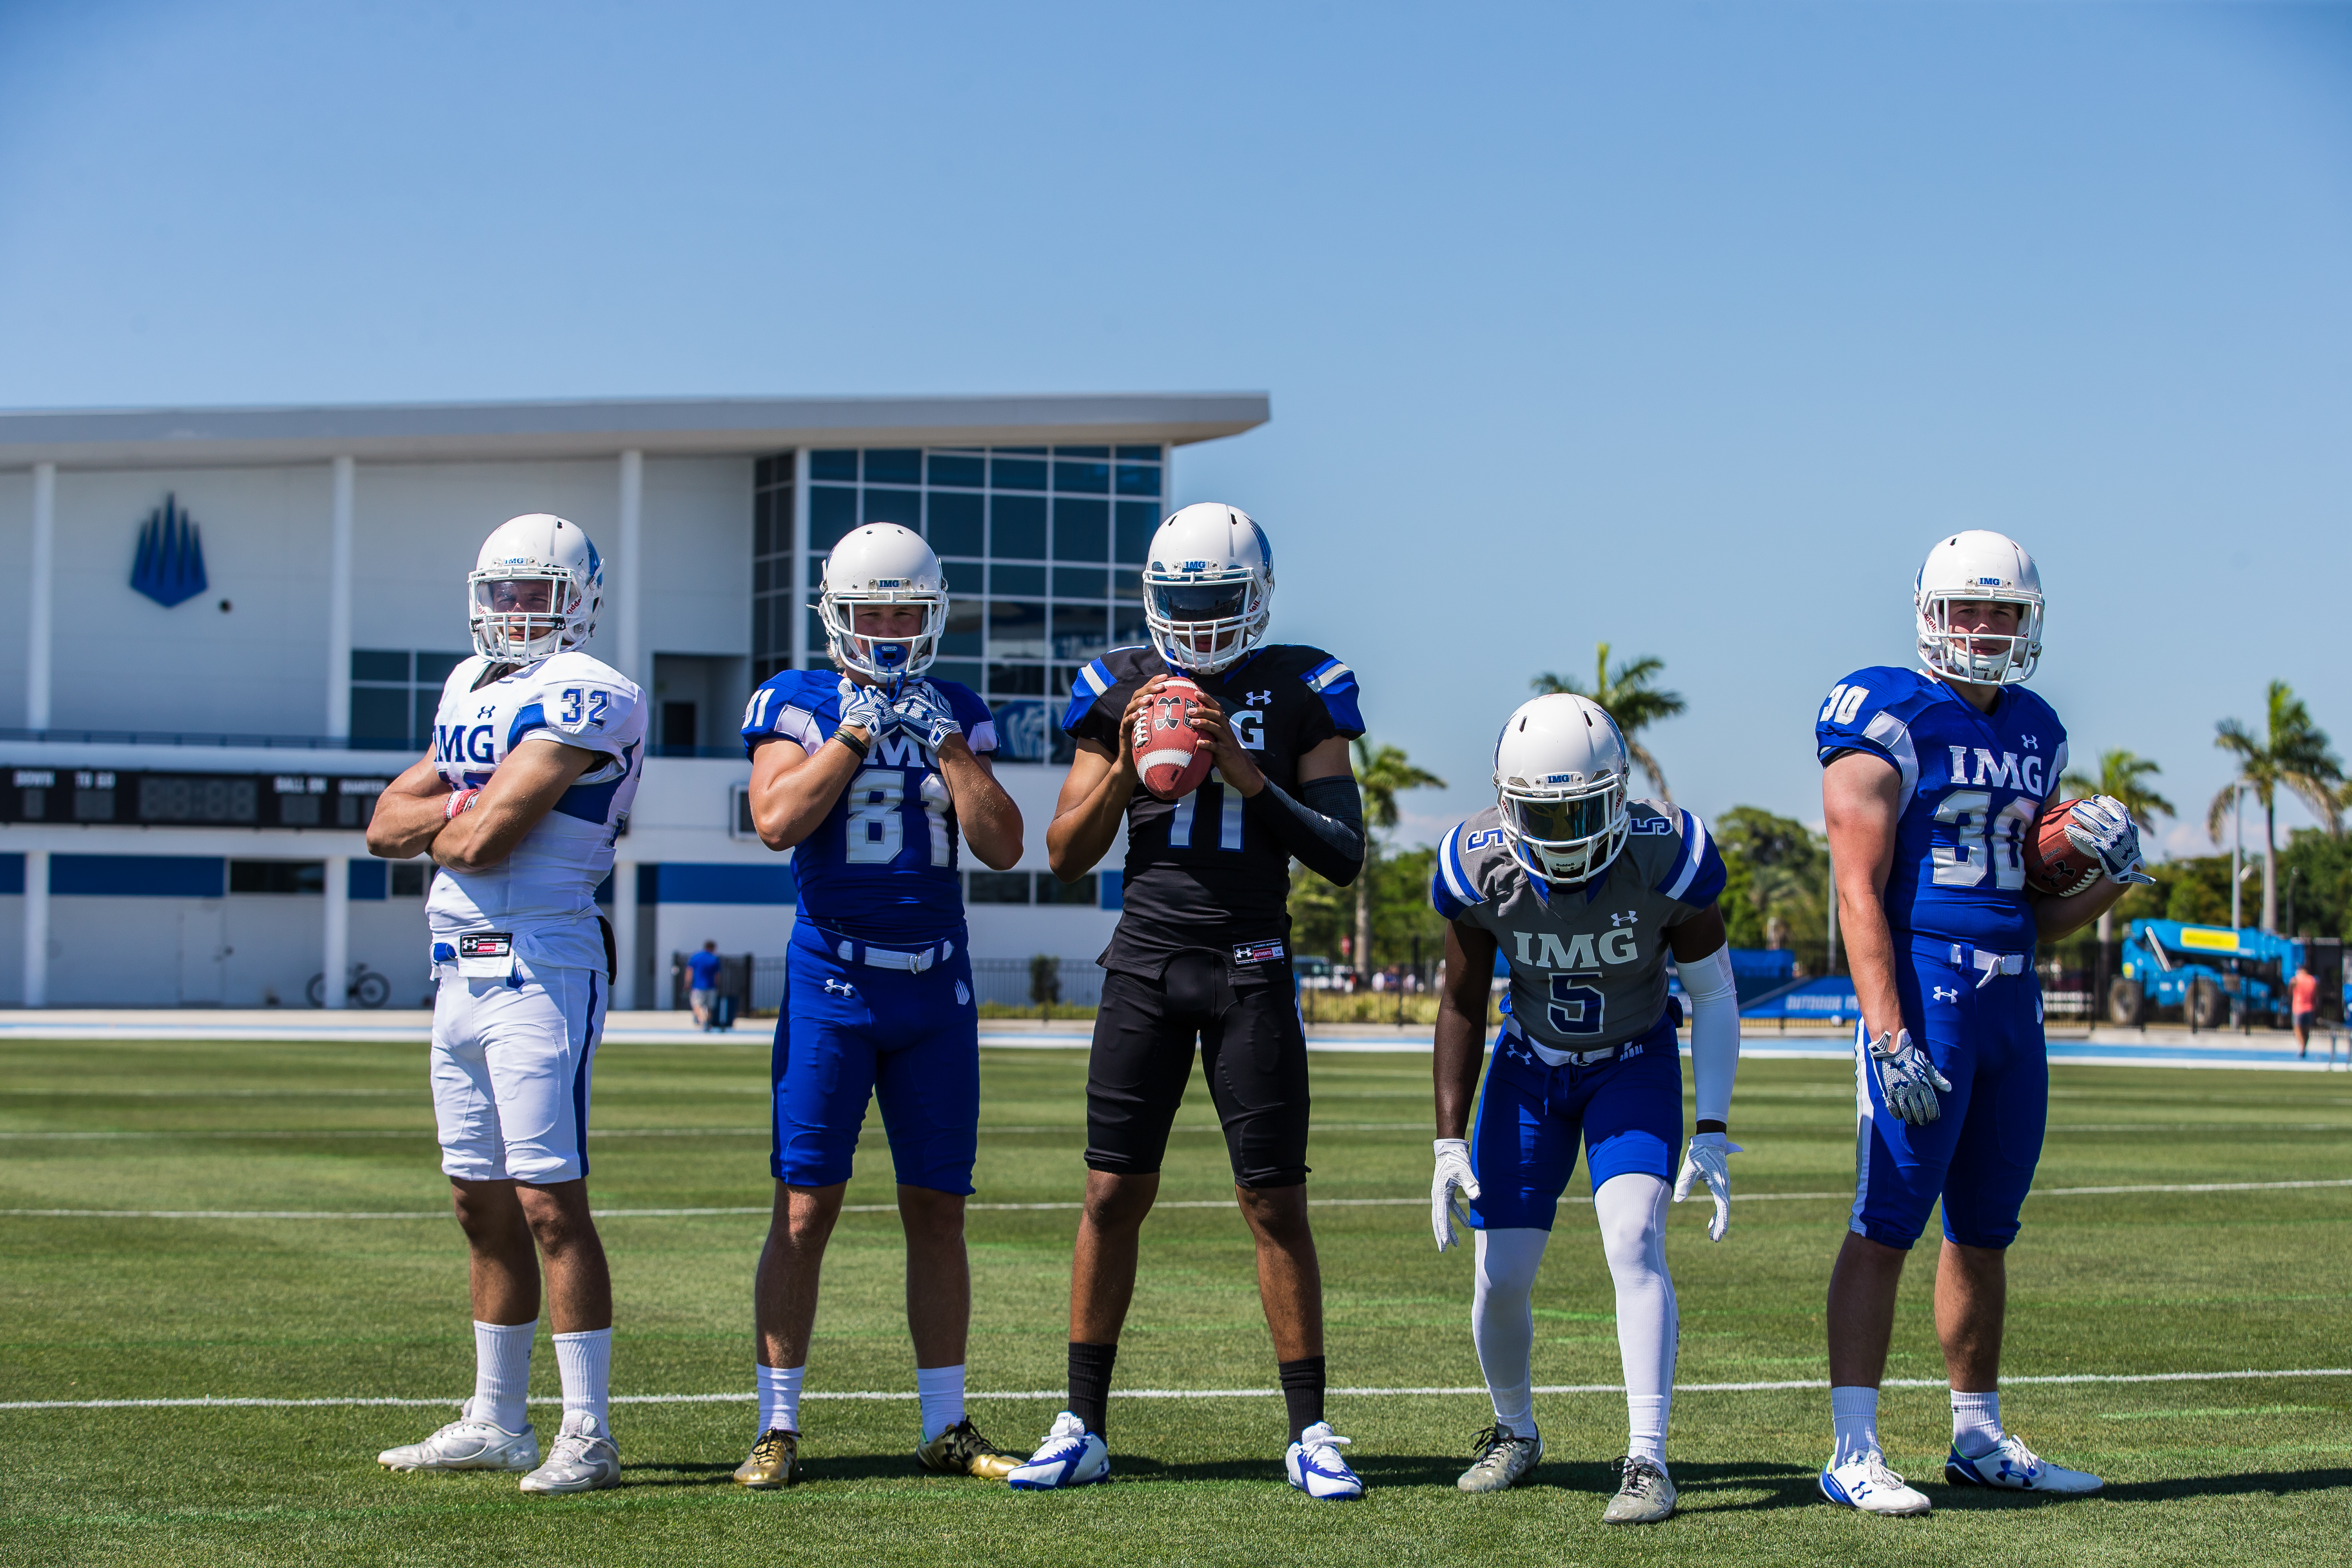 Among the IMG Class of 2017 stars from left: Santino Marchiol, Brock Annexstad, Kellen Mond, Marcus Williamson and Christian Pluchino (Photo: Casey Brooke Lawson, IMG Academy)